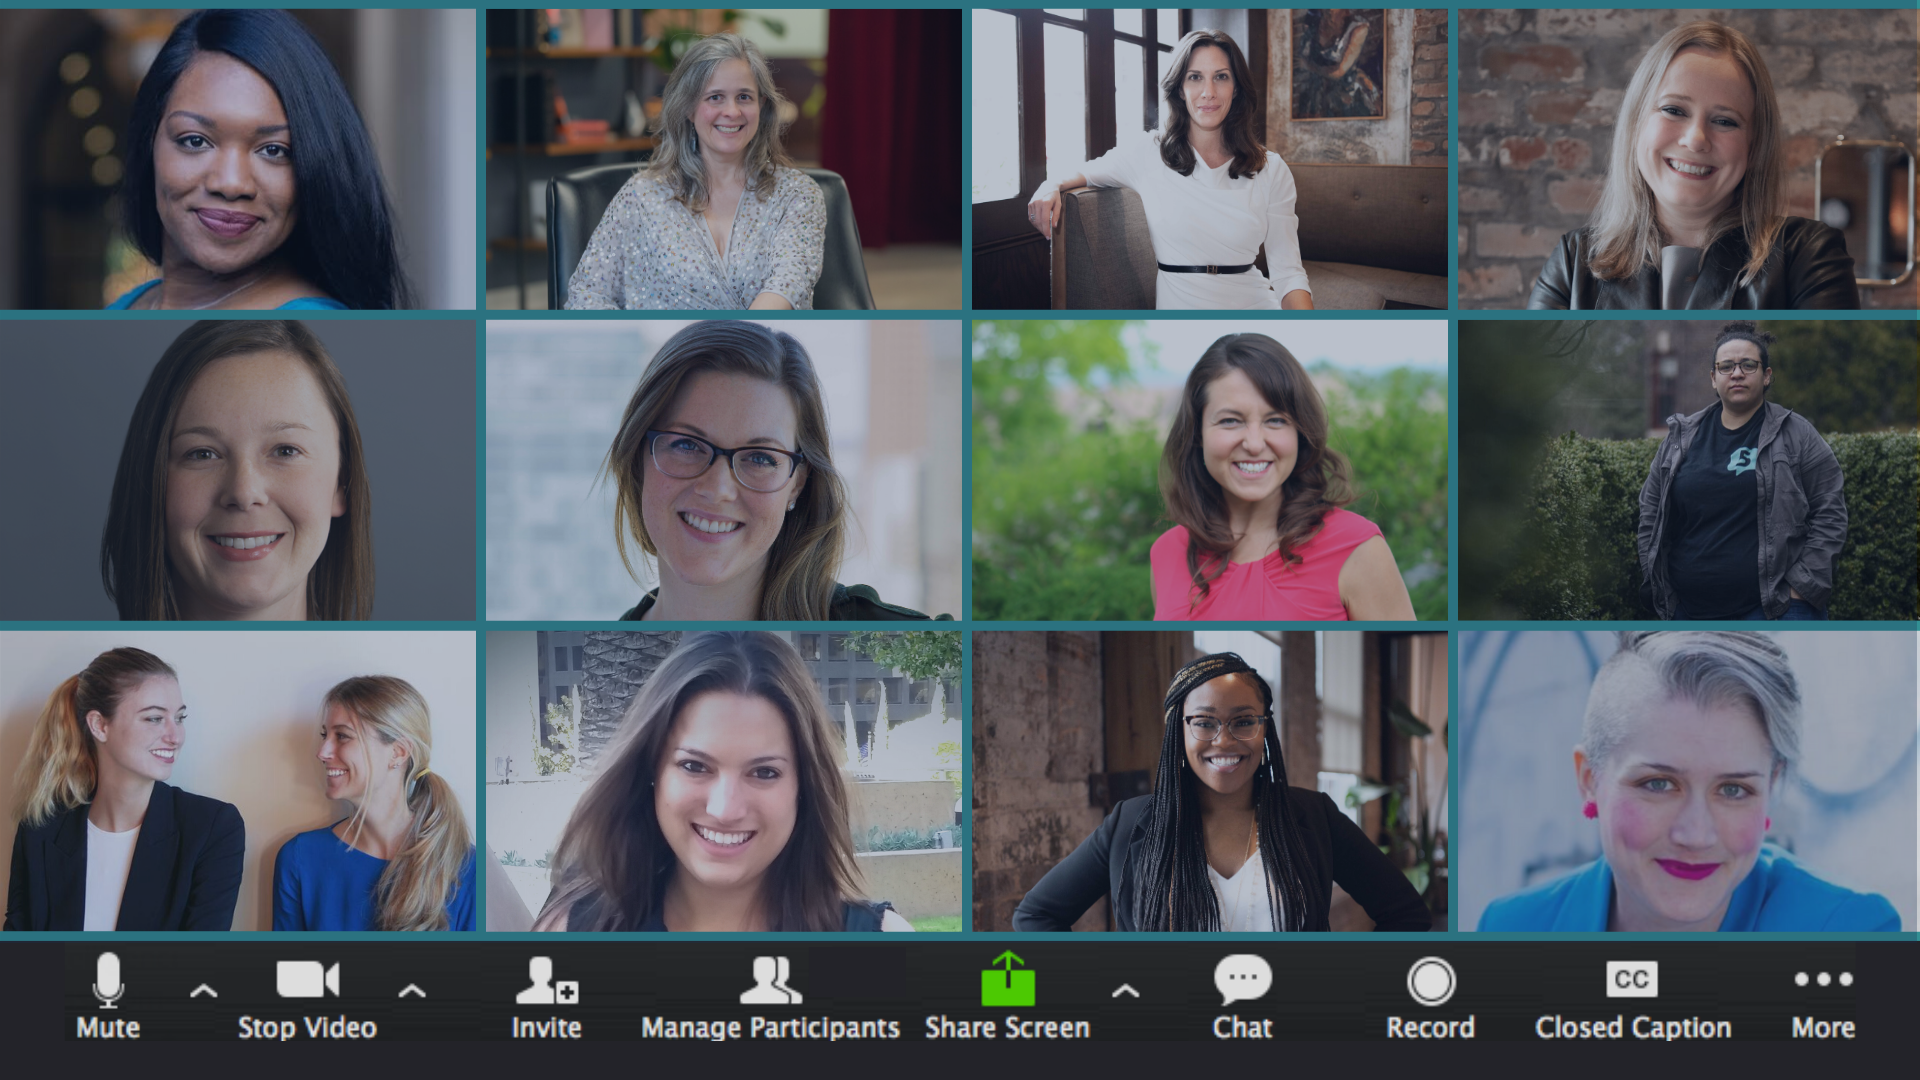 $1.25 Million Deployed to Female Founders